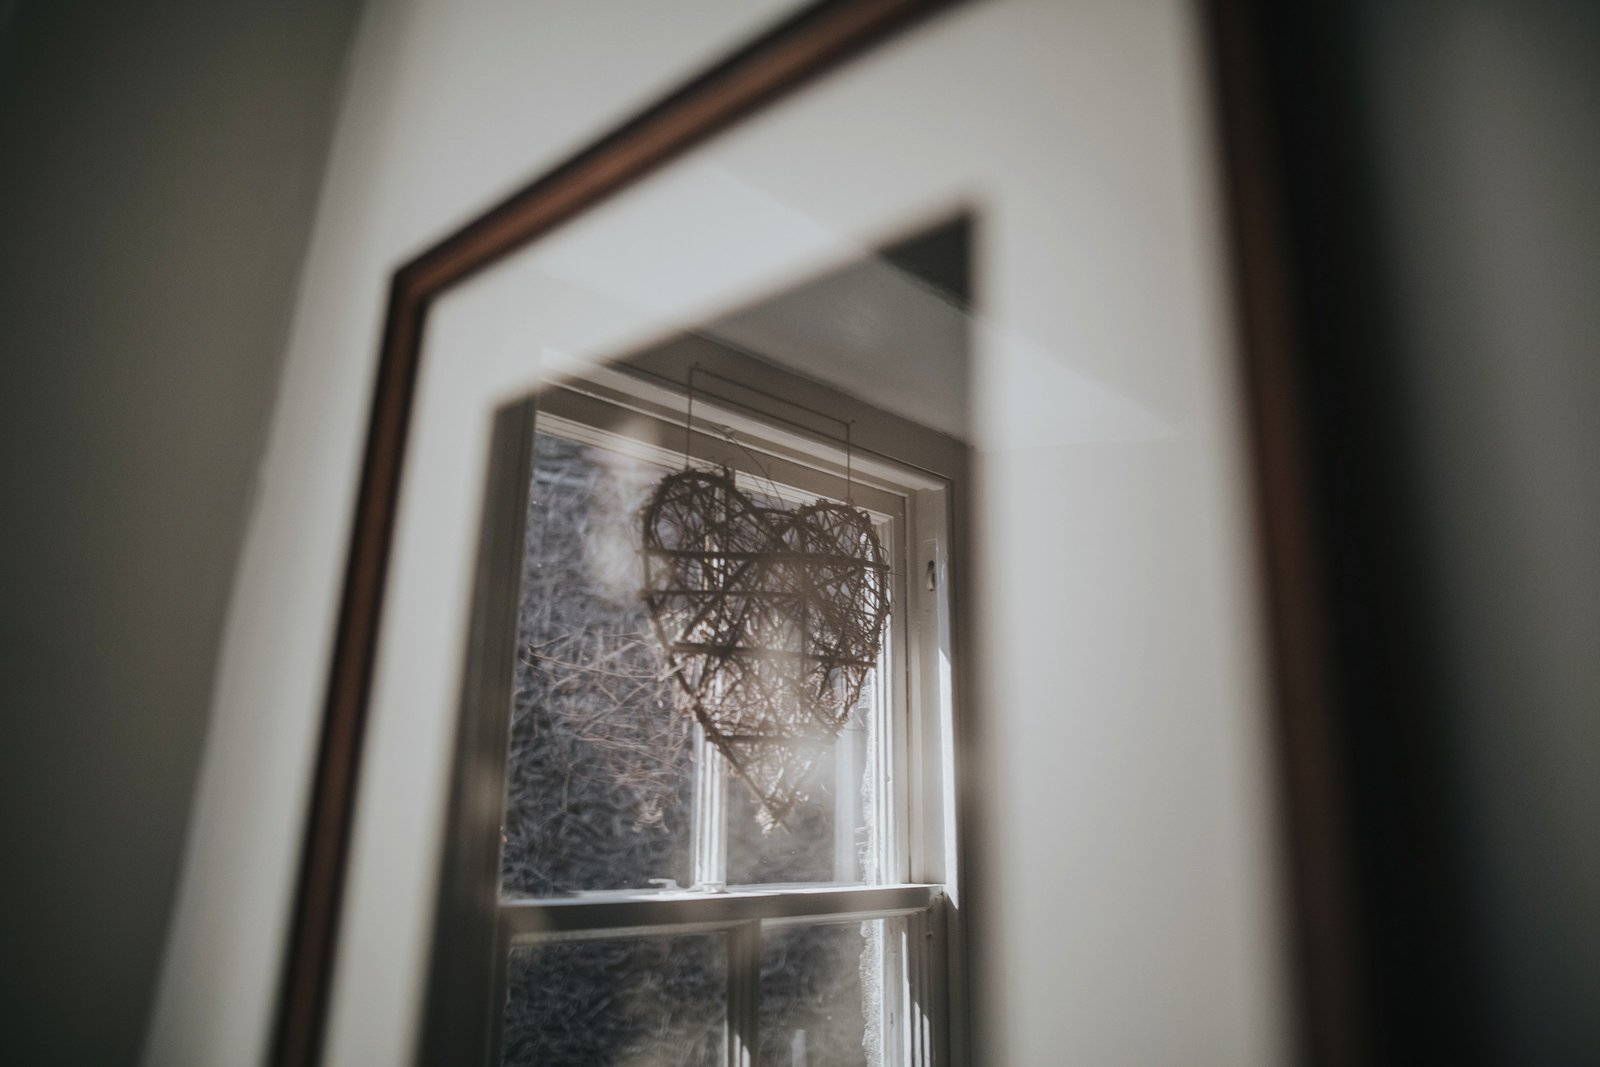 Decor reflected in picture's glass